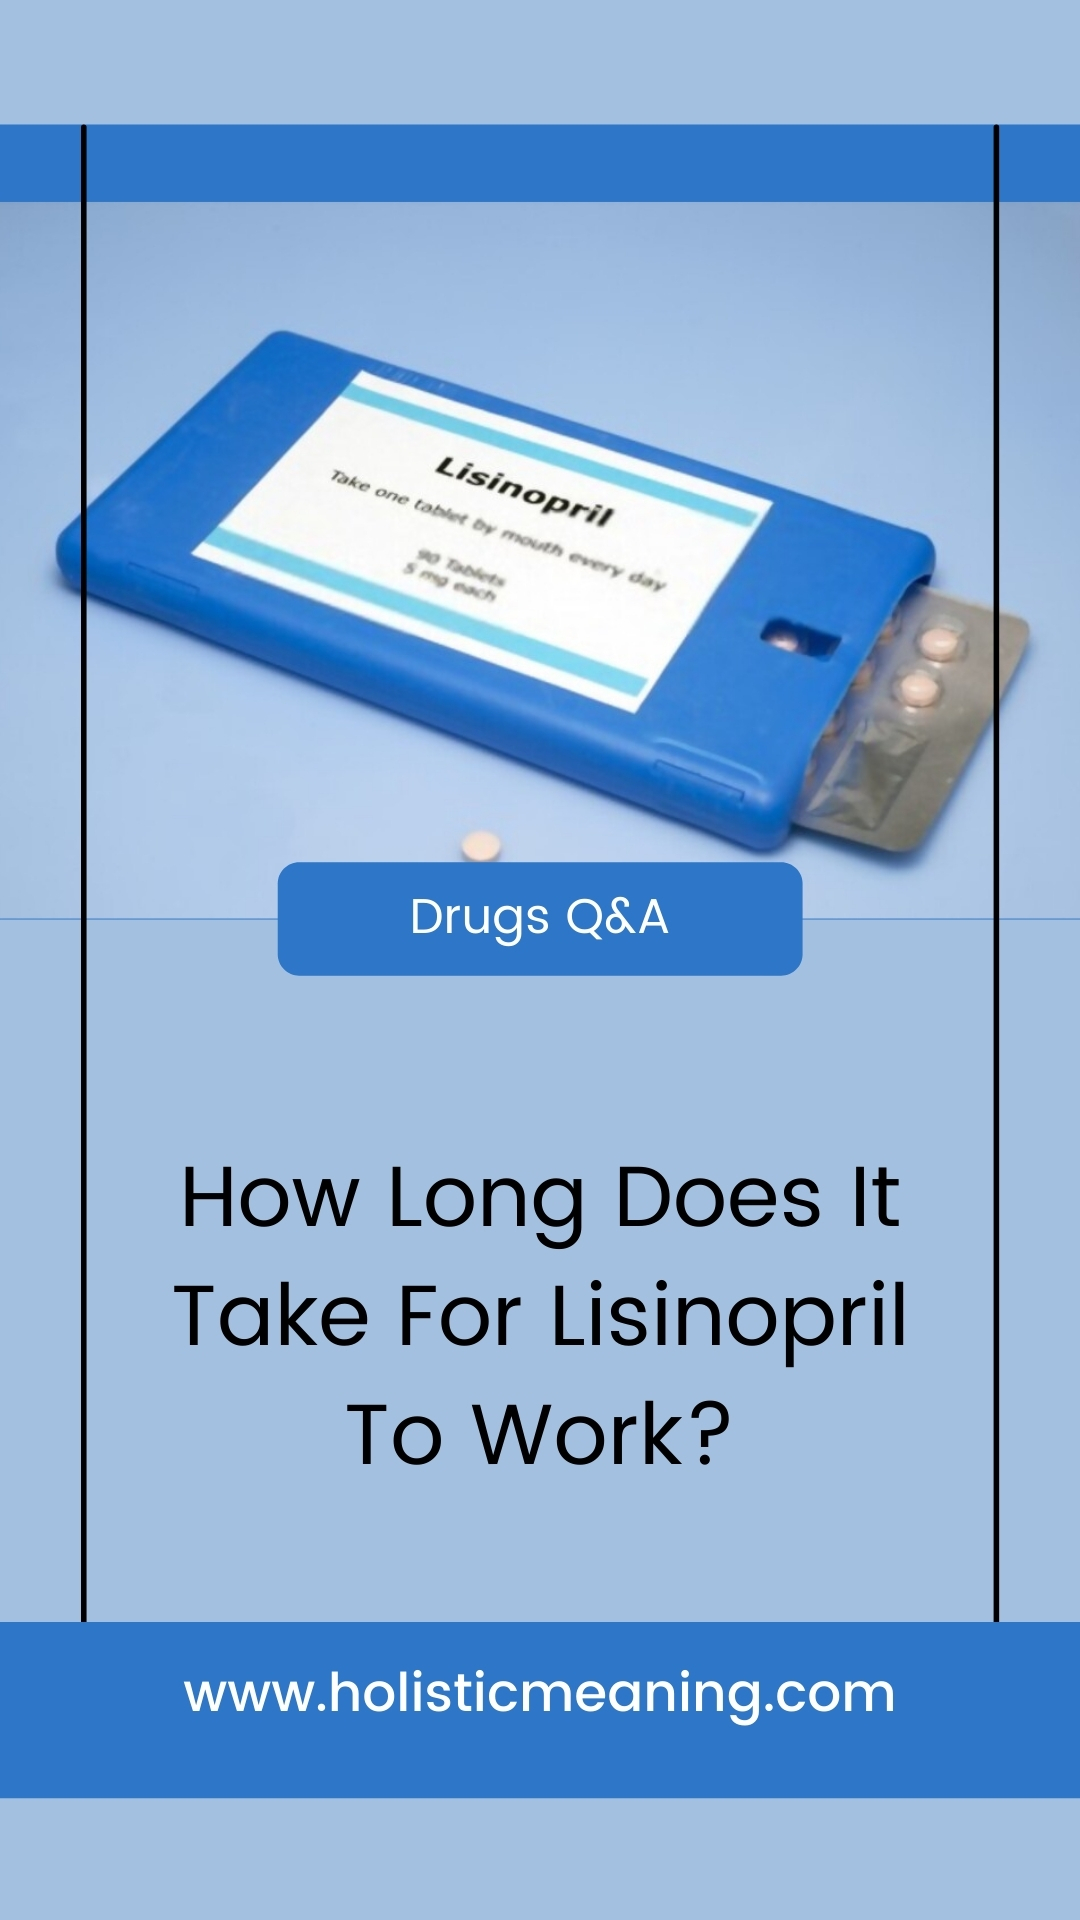 How Long Does It Take For Lisinopril To Work?